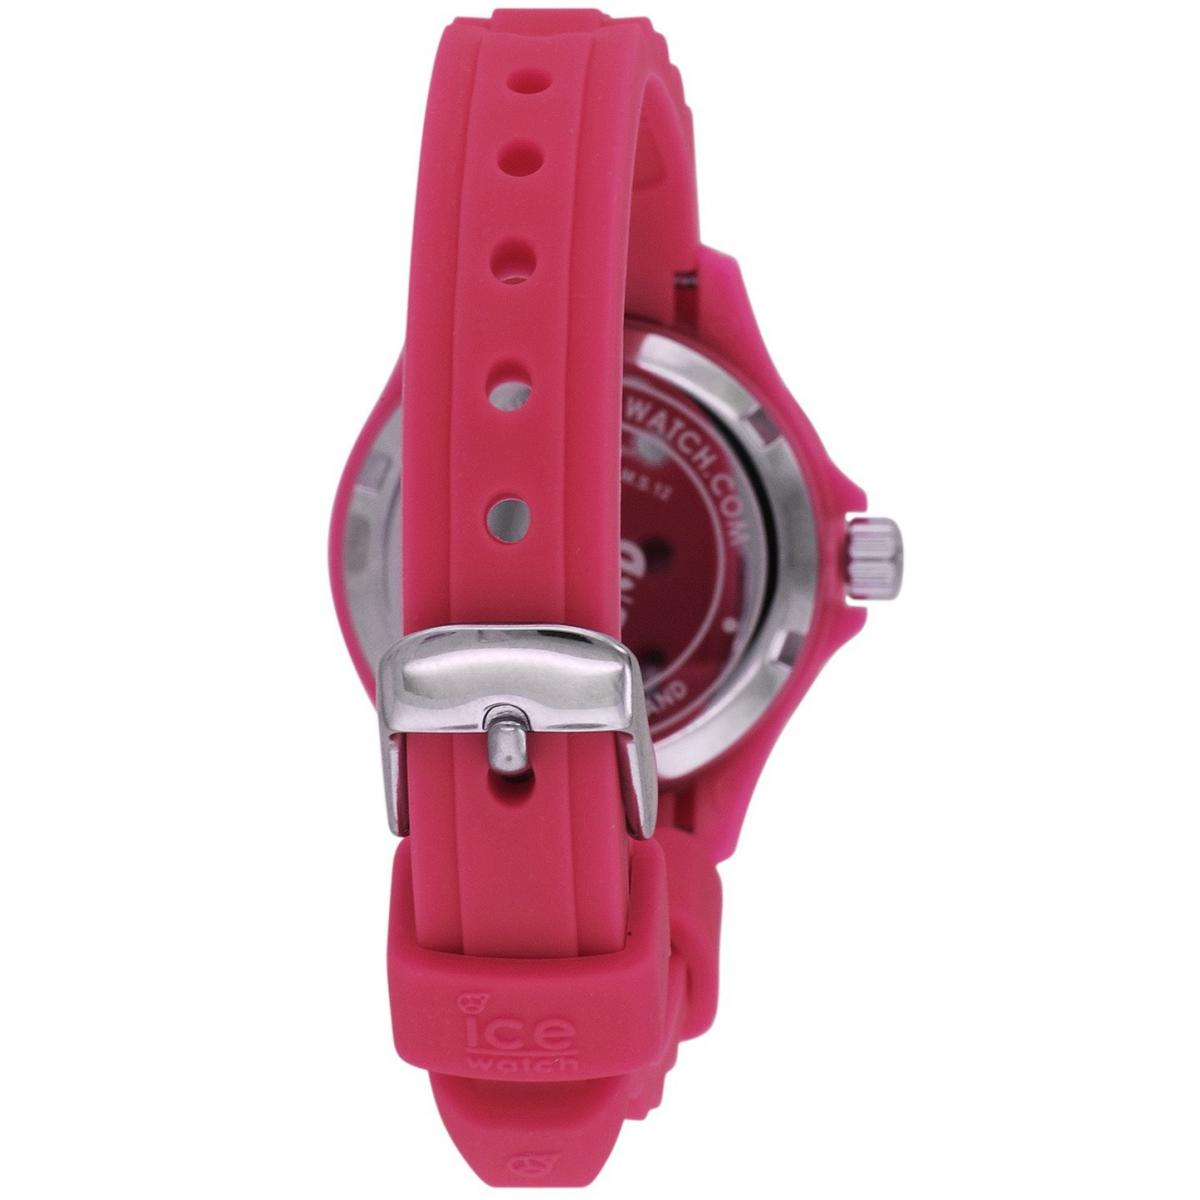 Montre Ice Watch Fille Silicone 747